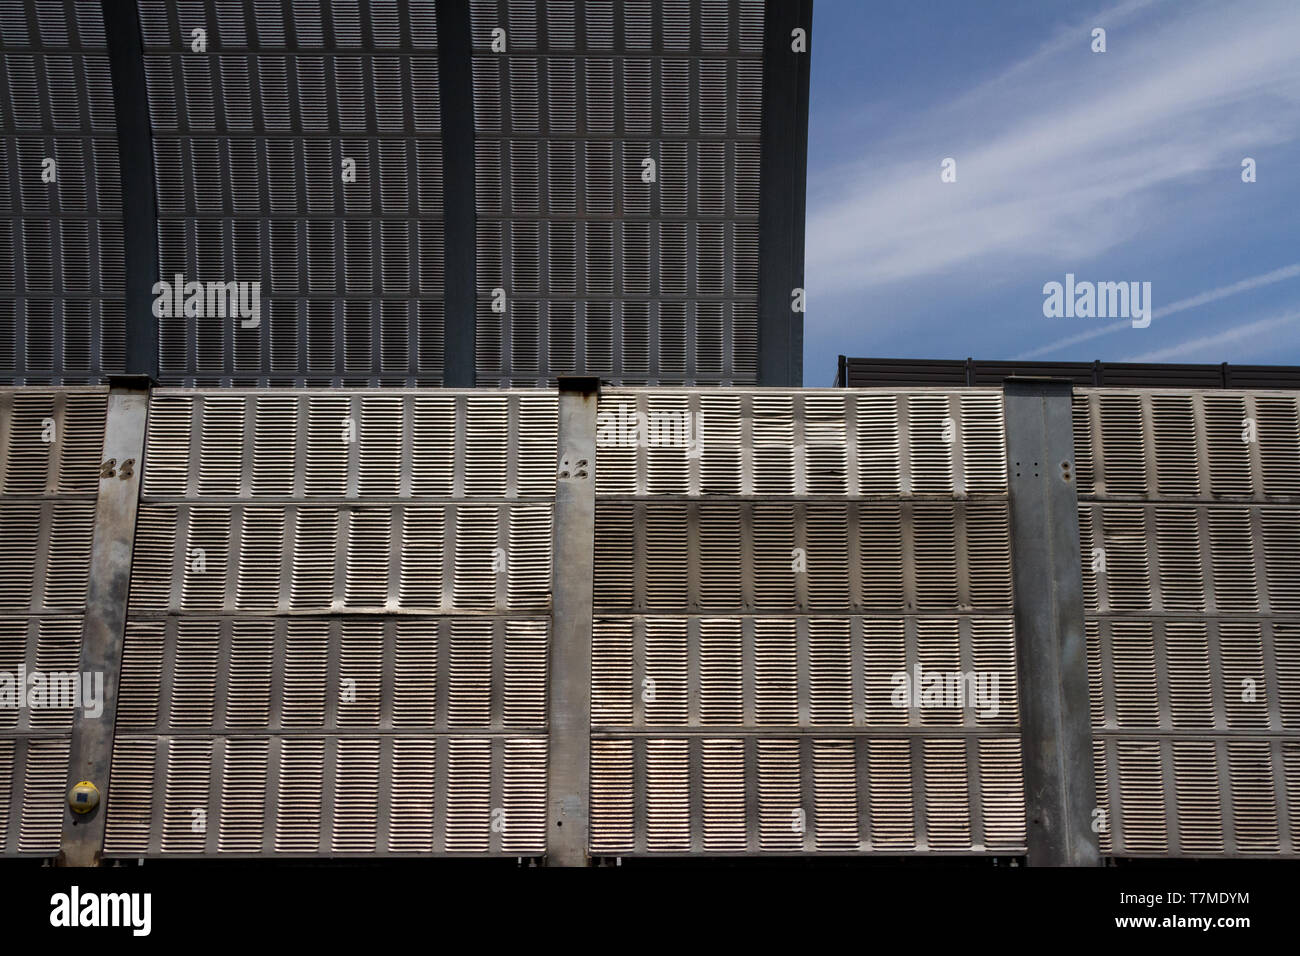 Metal sound-proofing walls on the Tomei Expressway in Tokyo, Japan. Sunday May 5th 2019 - Stock Image